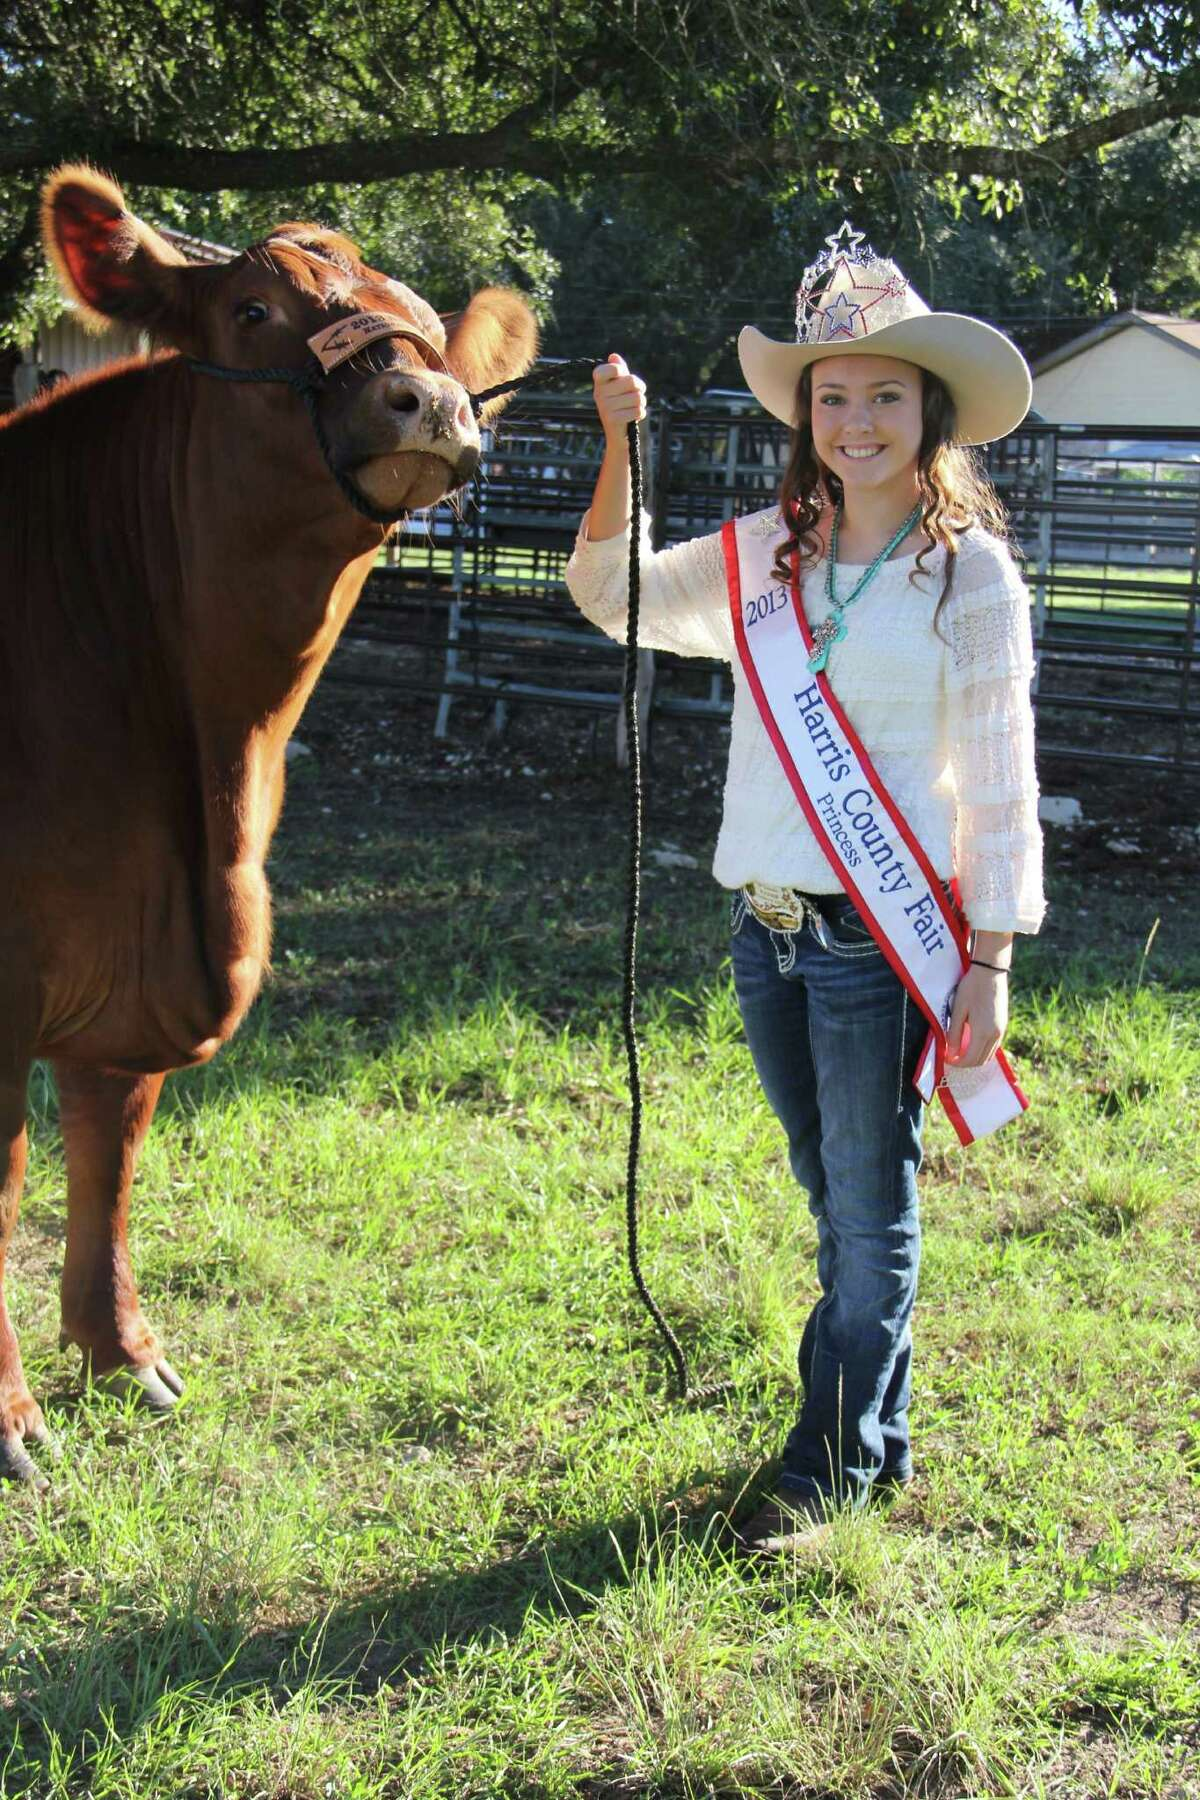 Autumn Huffman, Mayde Creek High School FFA vice president, competed in the Harris County Fair Pageant and won the title of Harris County Fair Princess and was also the first runner-up in the Miss Photogenic contest.